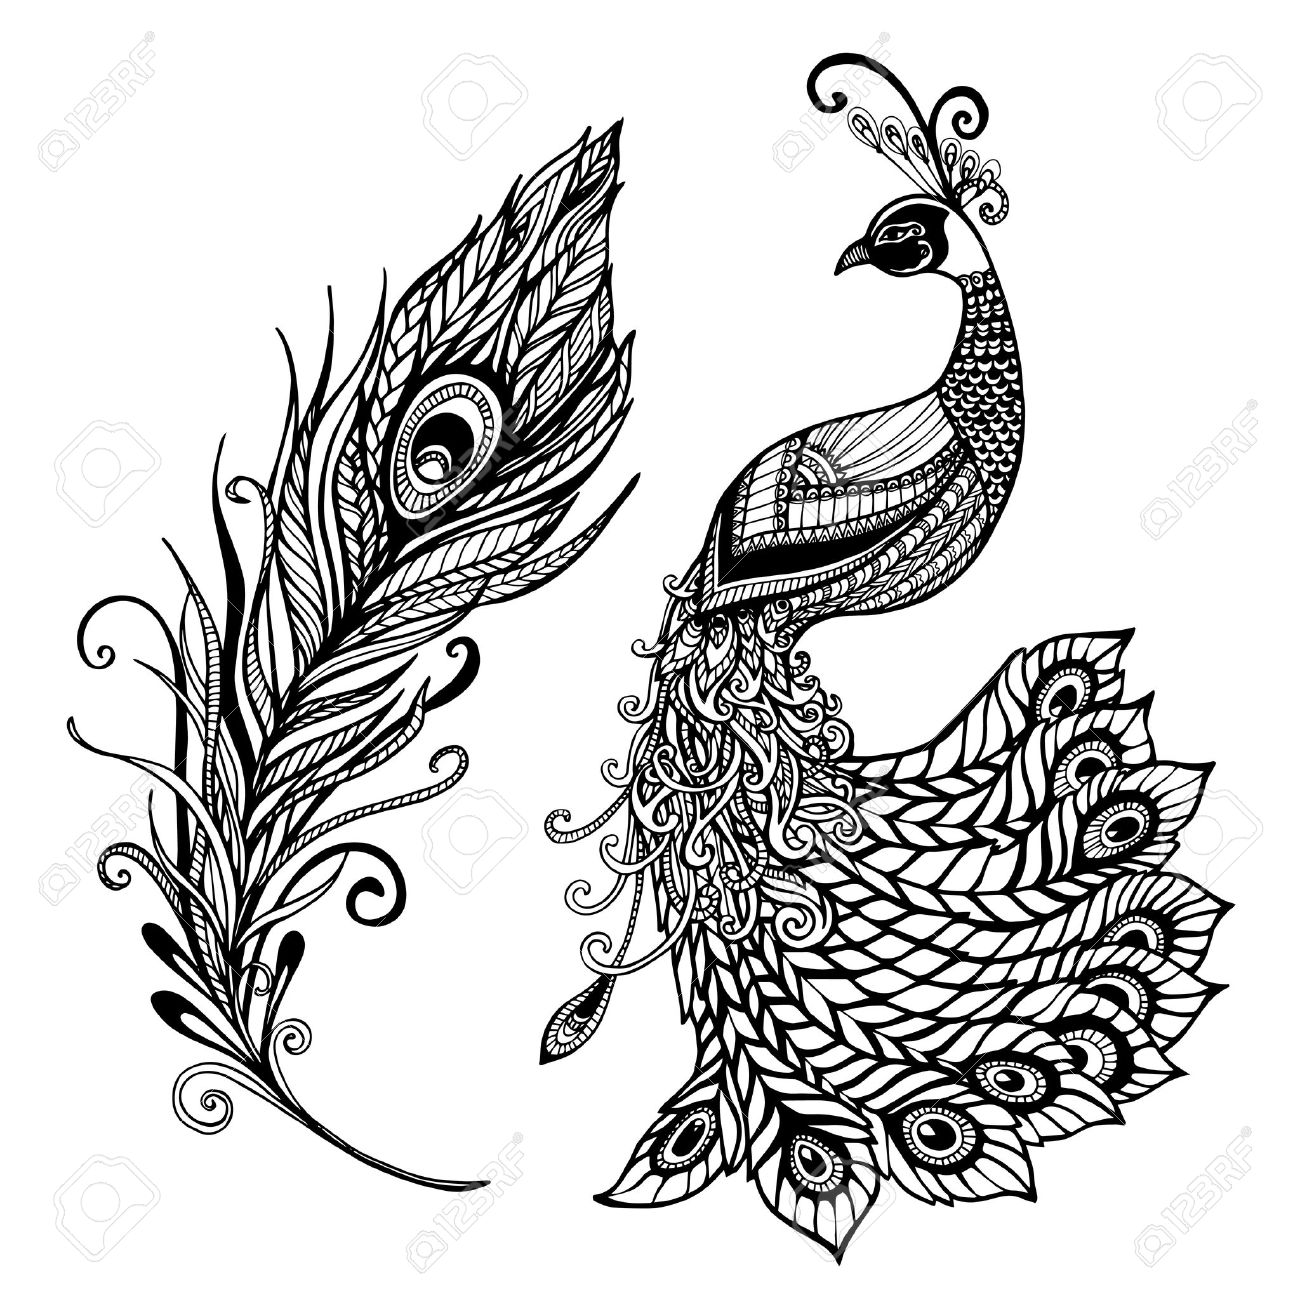 decorative stylized peacock bird feather art deco design template for wall frames doodle black abstract vector